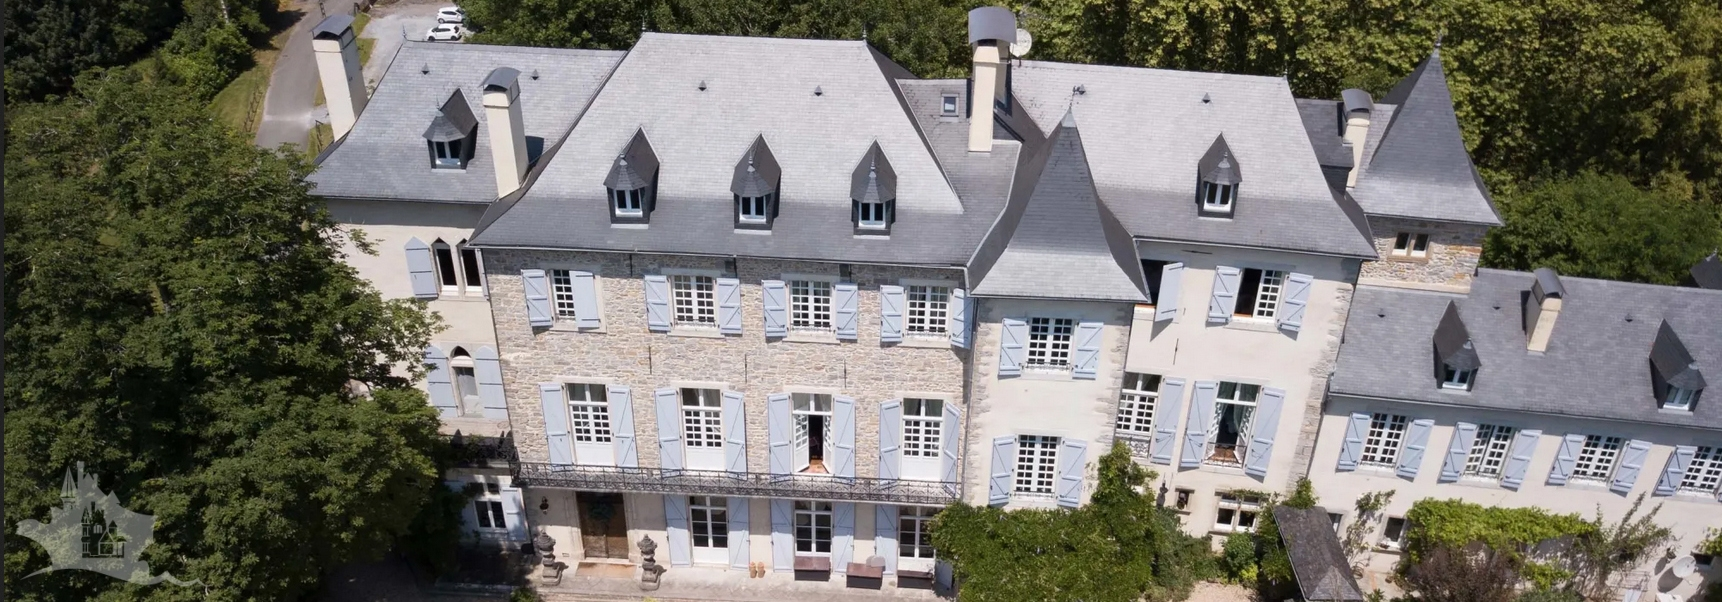 NLEN002038 – No reserve Auction Property – 17 bedroom Chateau and grounds – Pyrénées-Atlantiques